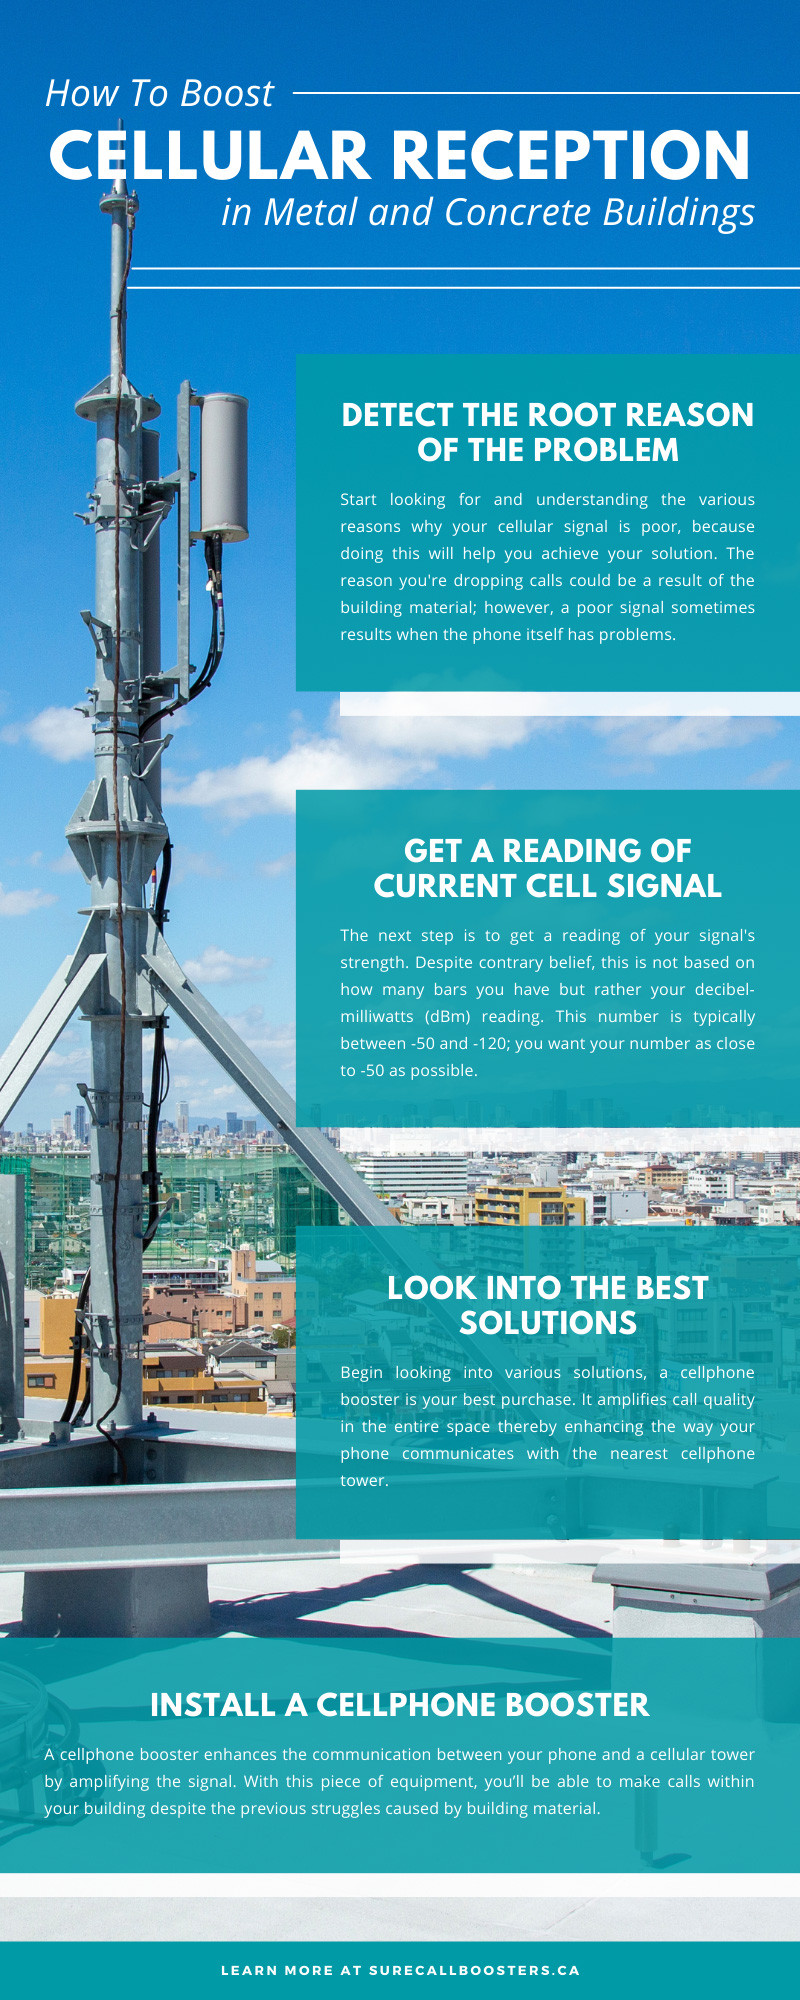 How To Boost Cellular Reception in Metal and Concrete Buildings